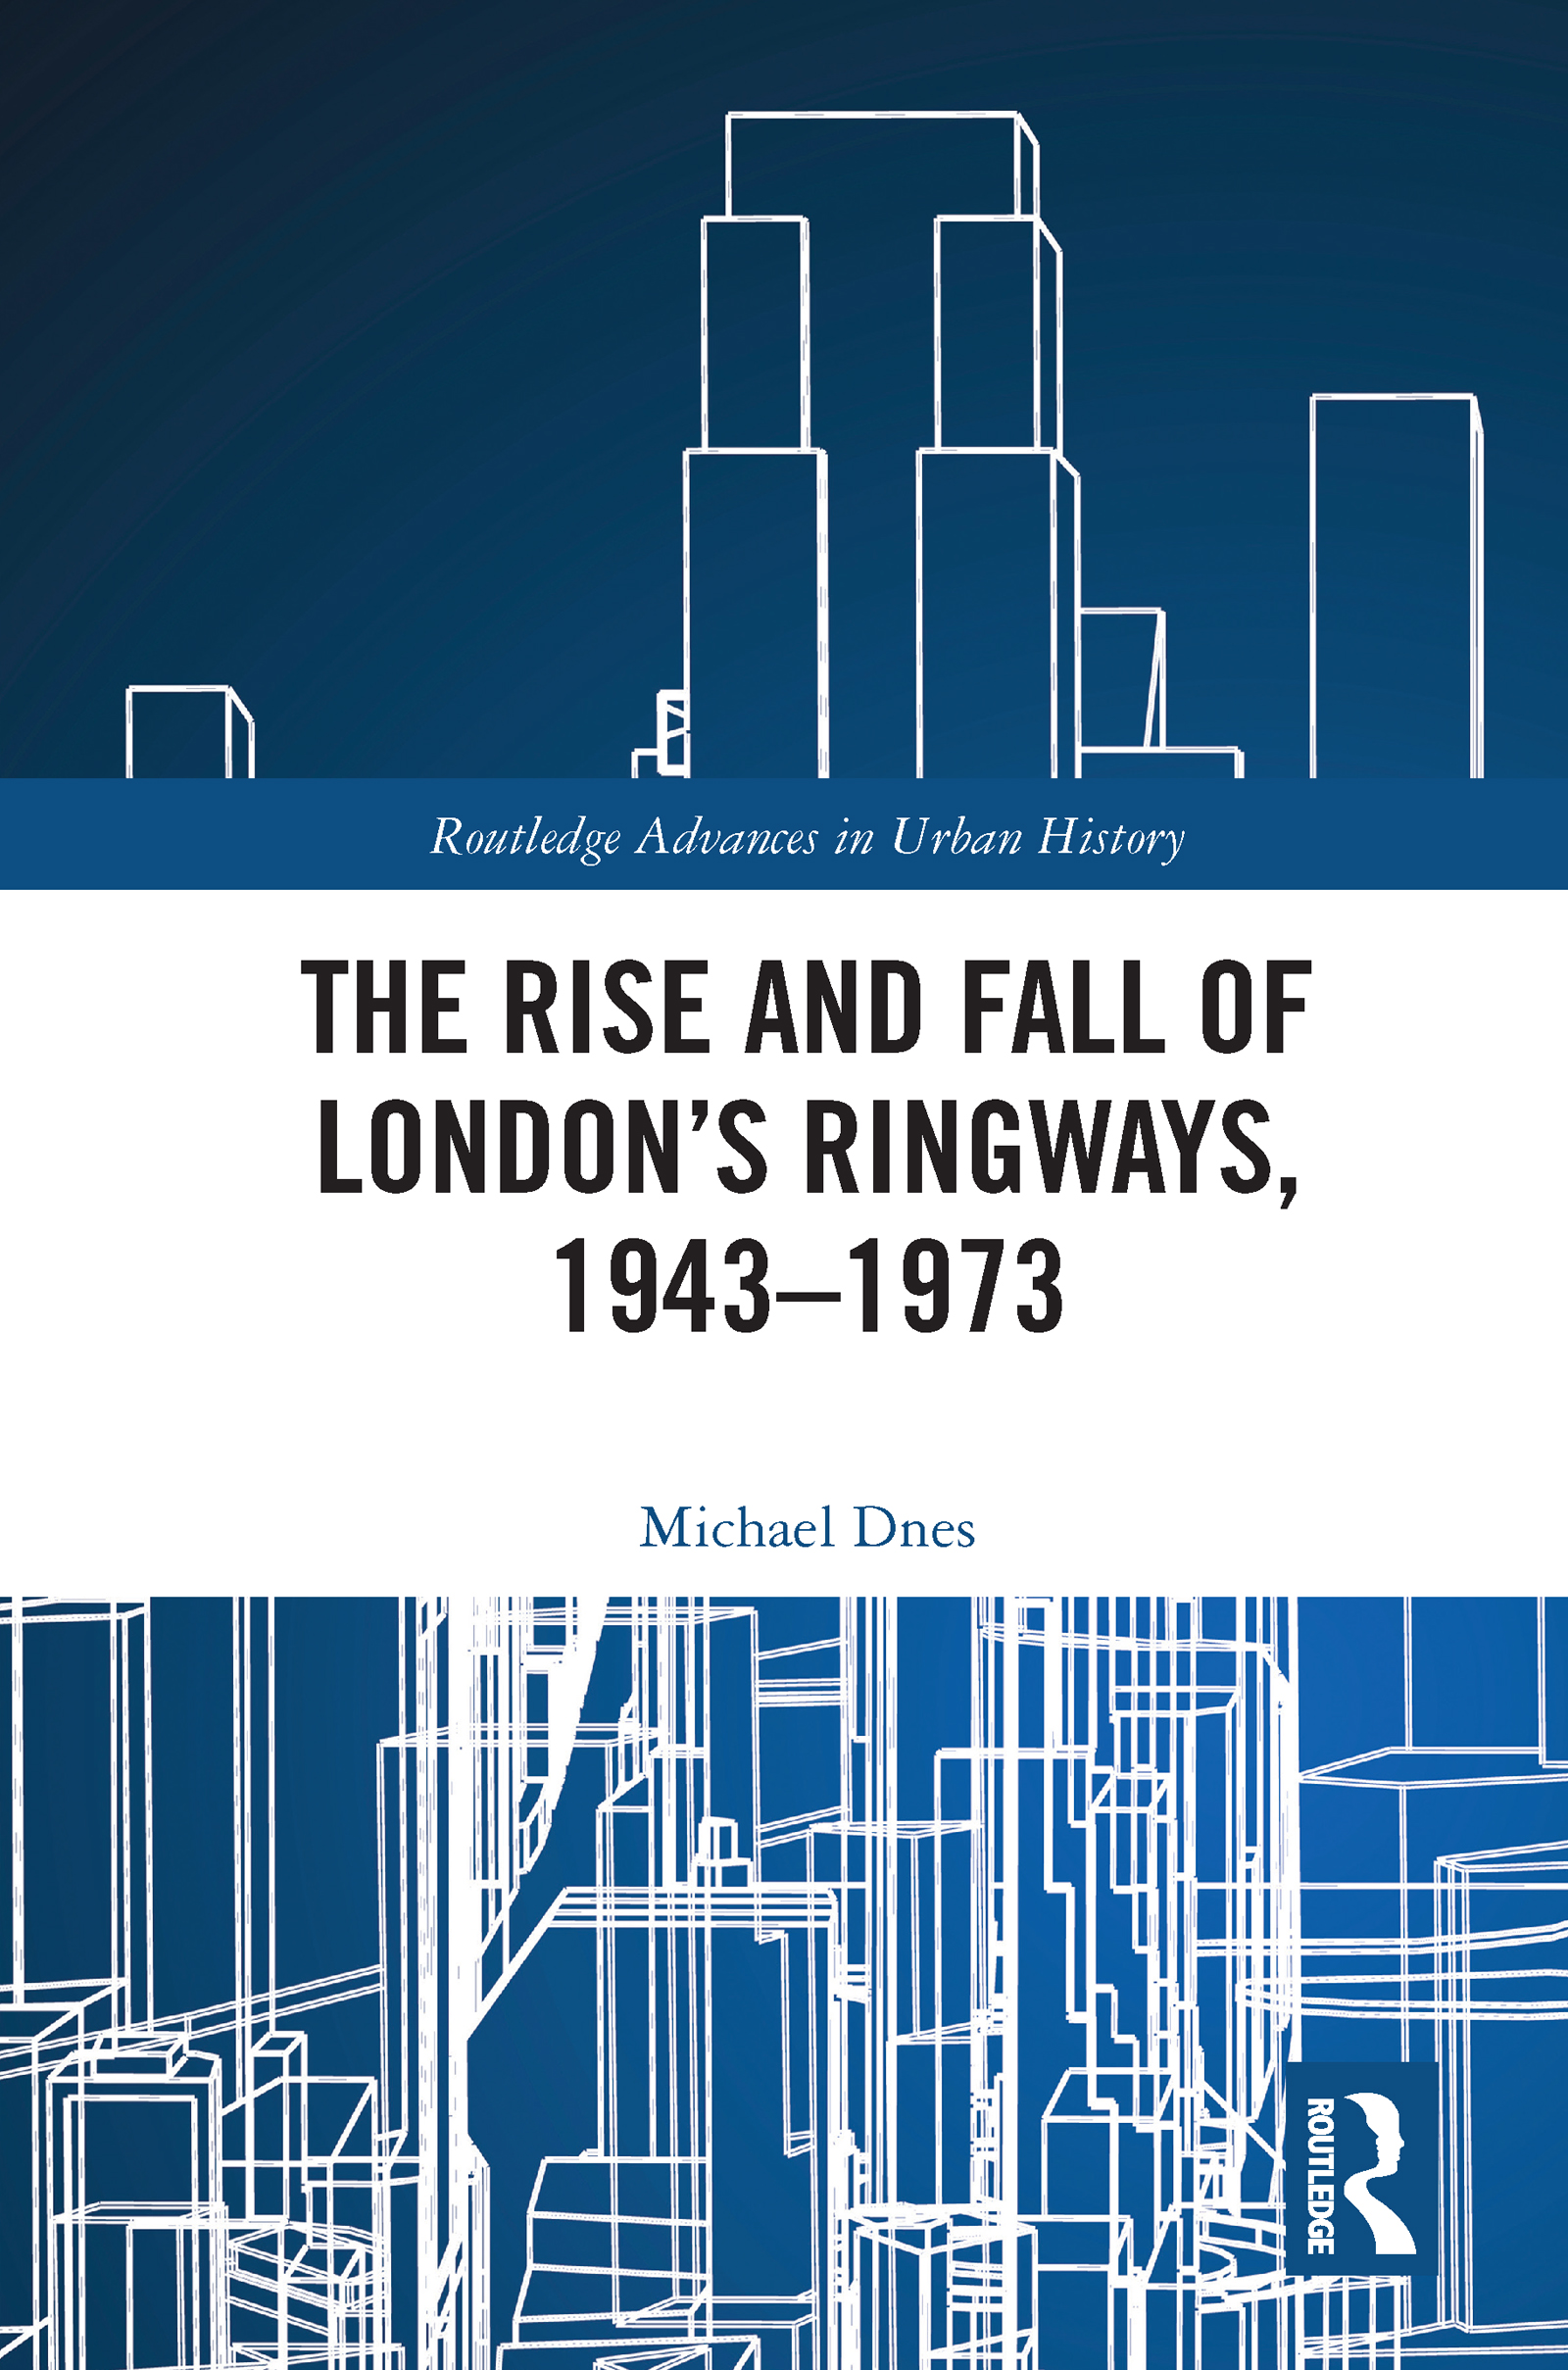 The Rise and Fall of London's Ringways, 1943-1973